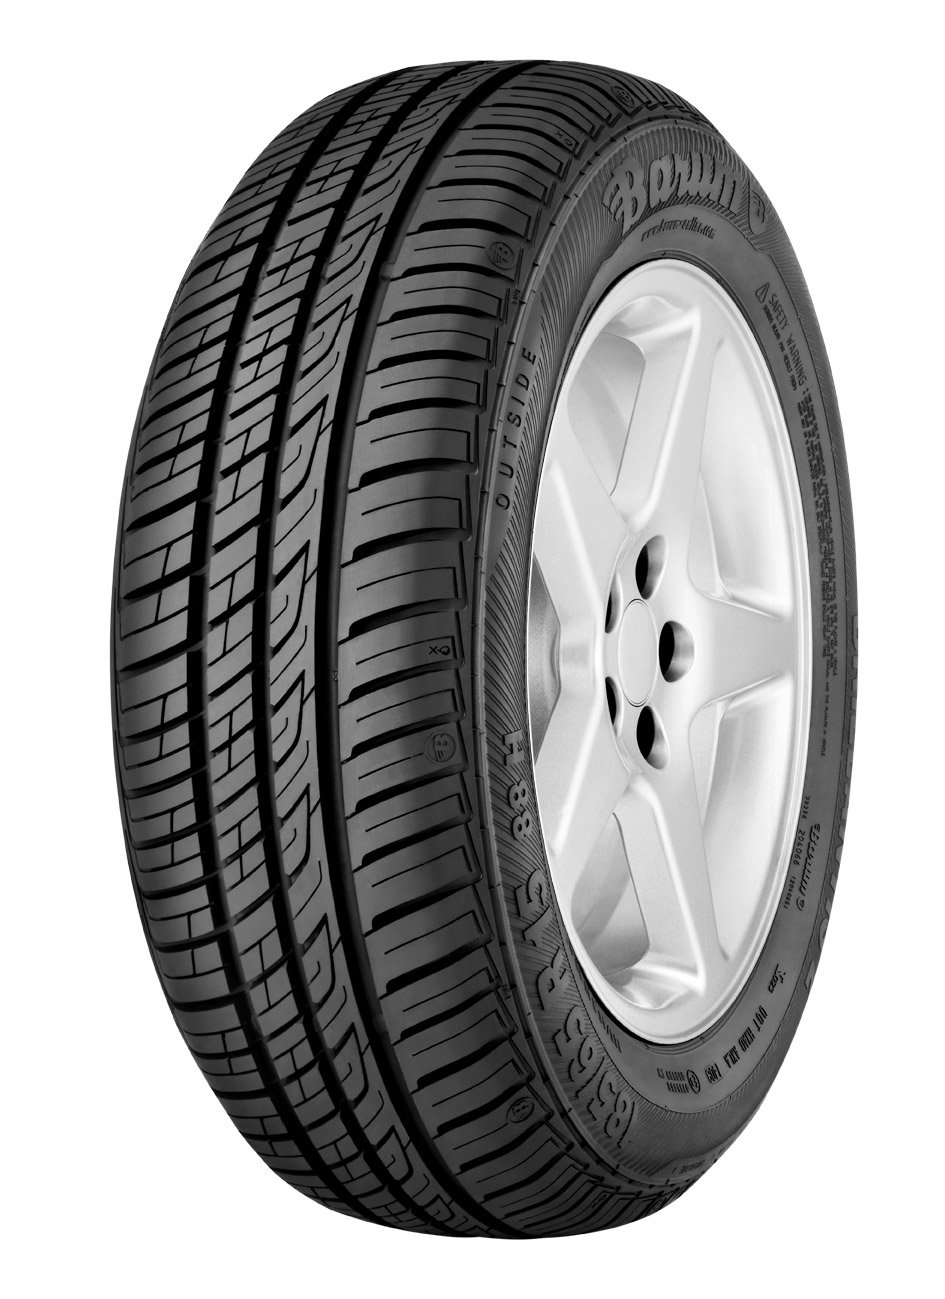 BARUM Brillantis 2   - 175/65/14 082T - E/C/70dB - Summer tire (Passenger Car) Continental Corporation